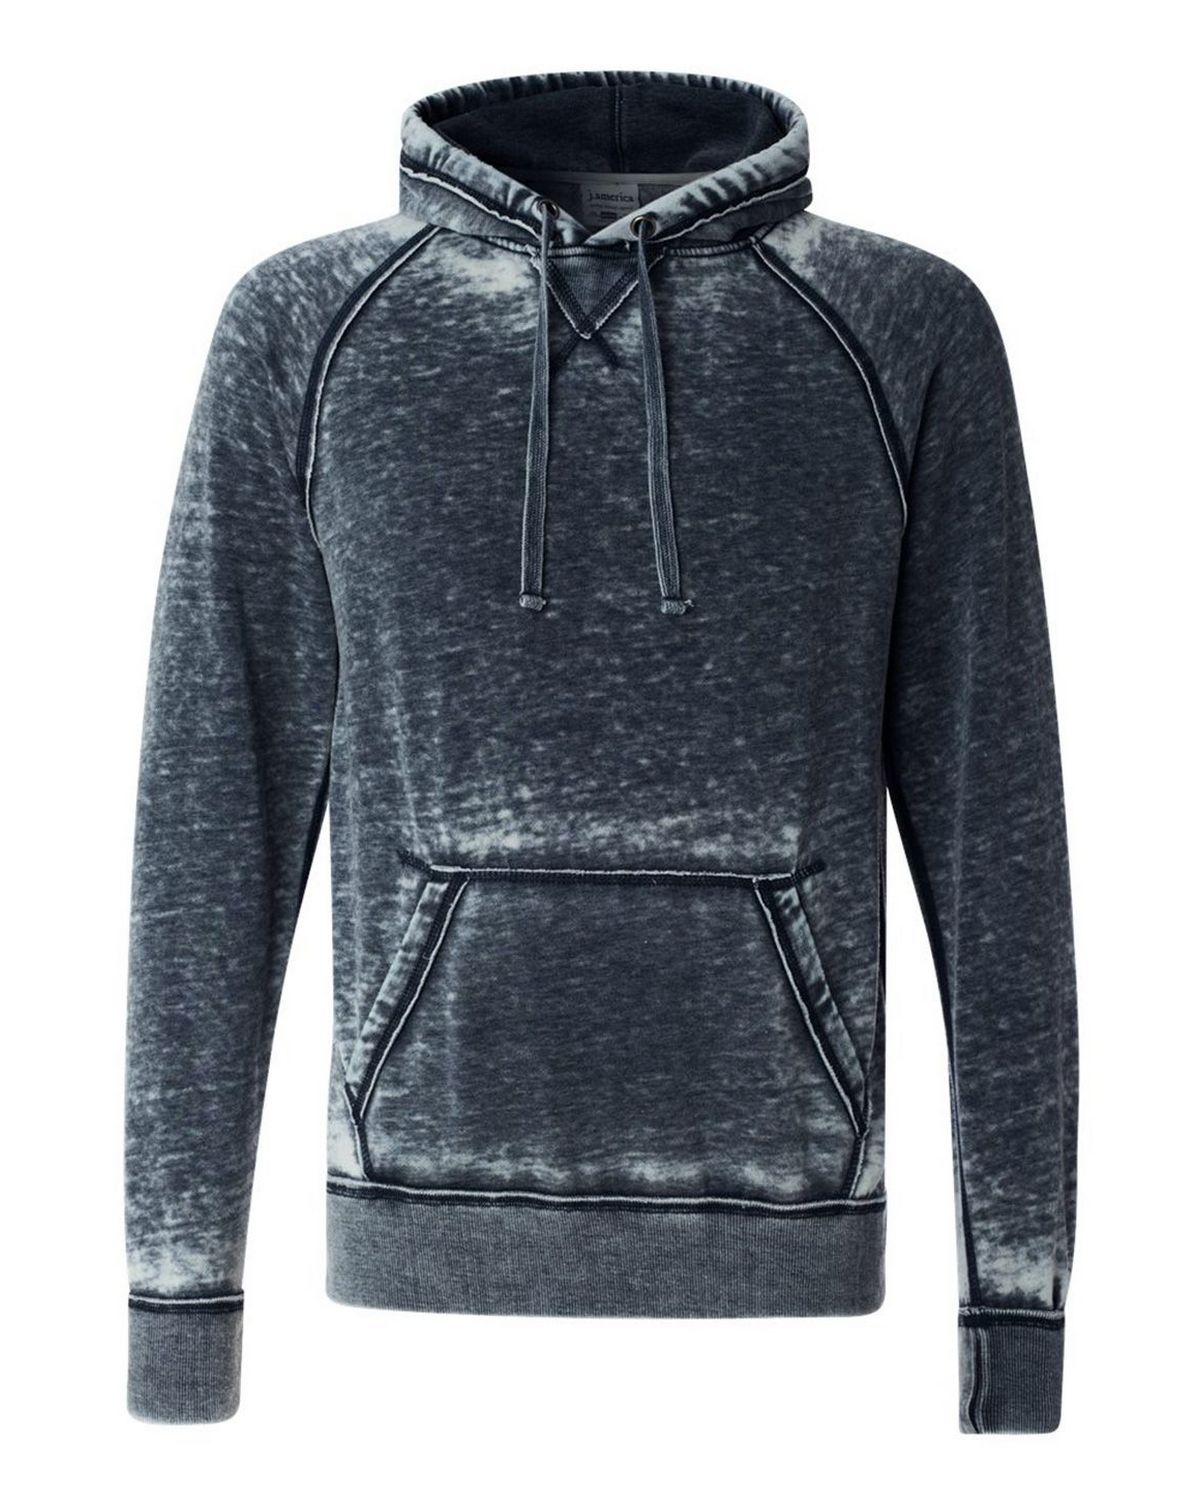 J America 8915 Men's Vintage Zen Fleece Hooded Pullover Sweatshirt - Vintage Navy - S from J America